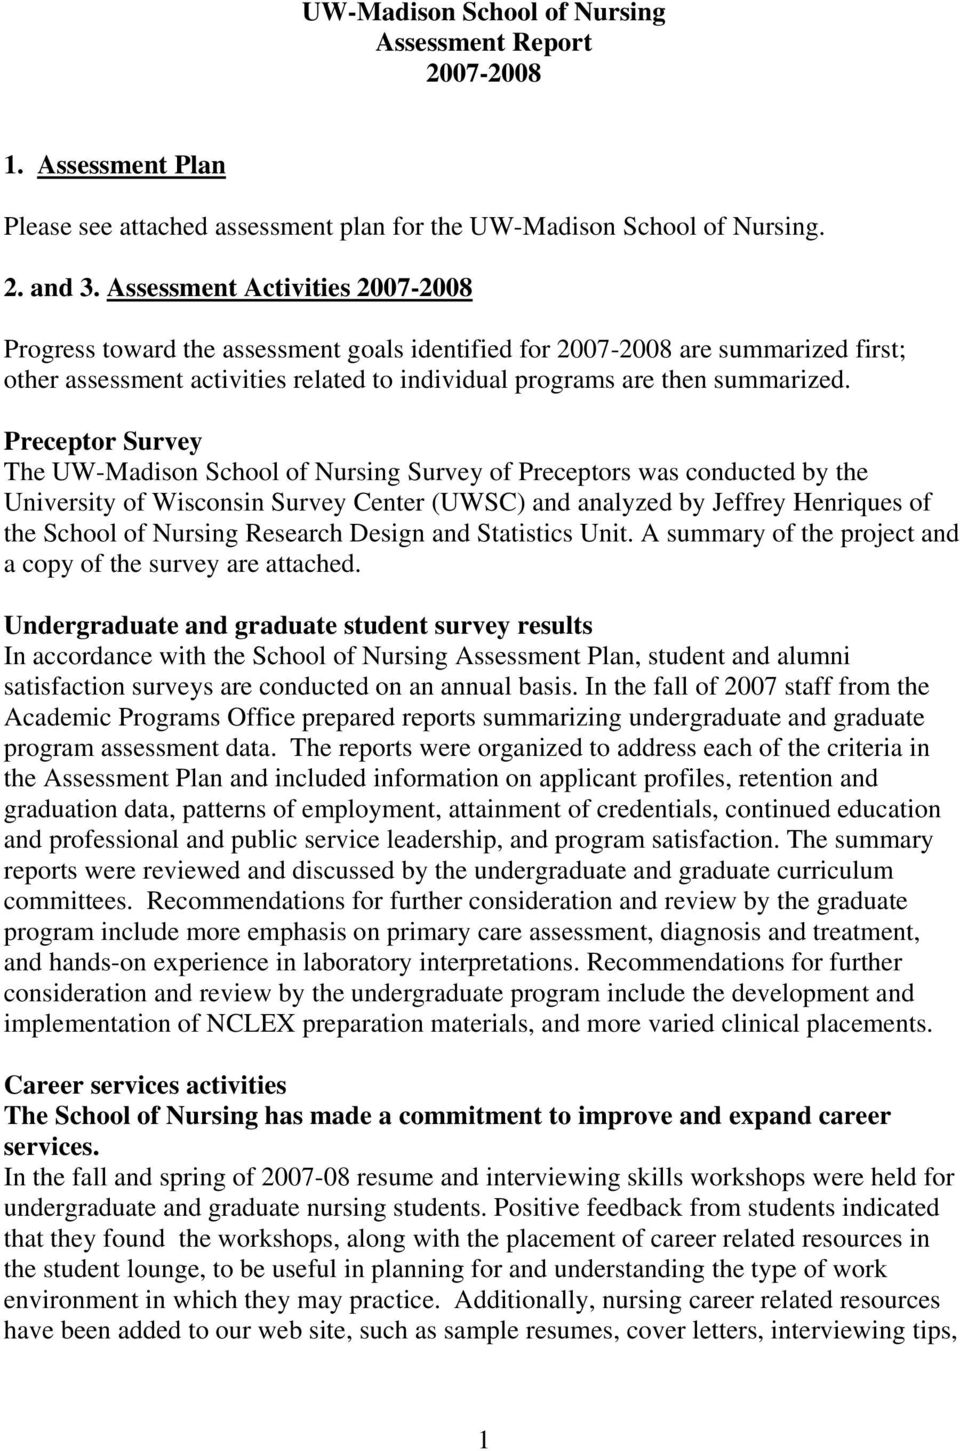 Preceptor Survey The UW-Madison School of Nursing Survey of Preceptors was conducted by the University of Wisconsin Survey Center (UWSC) and analyzed by Jeffrey Henriques of the School of Nursing